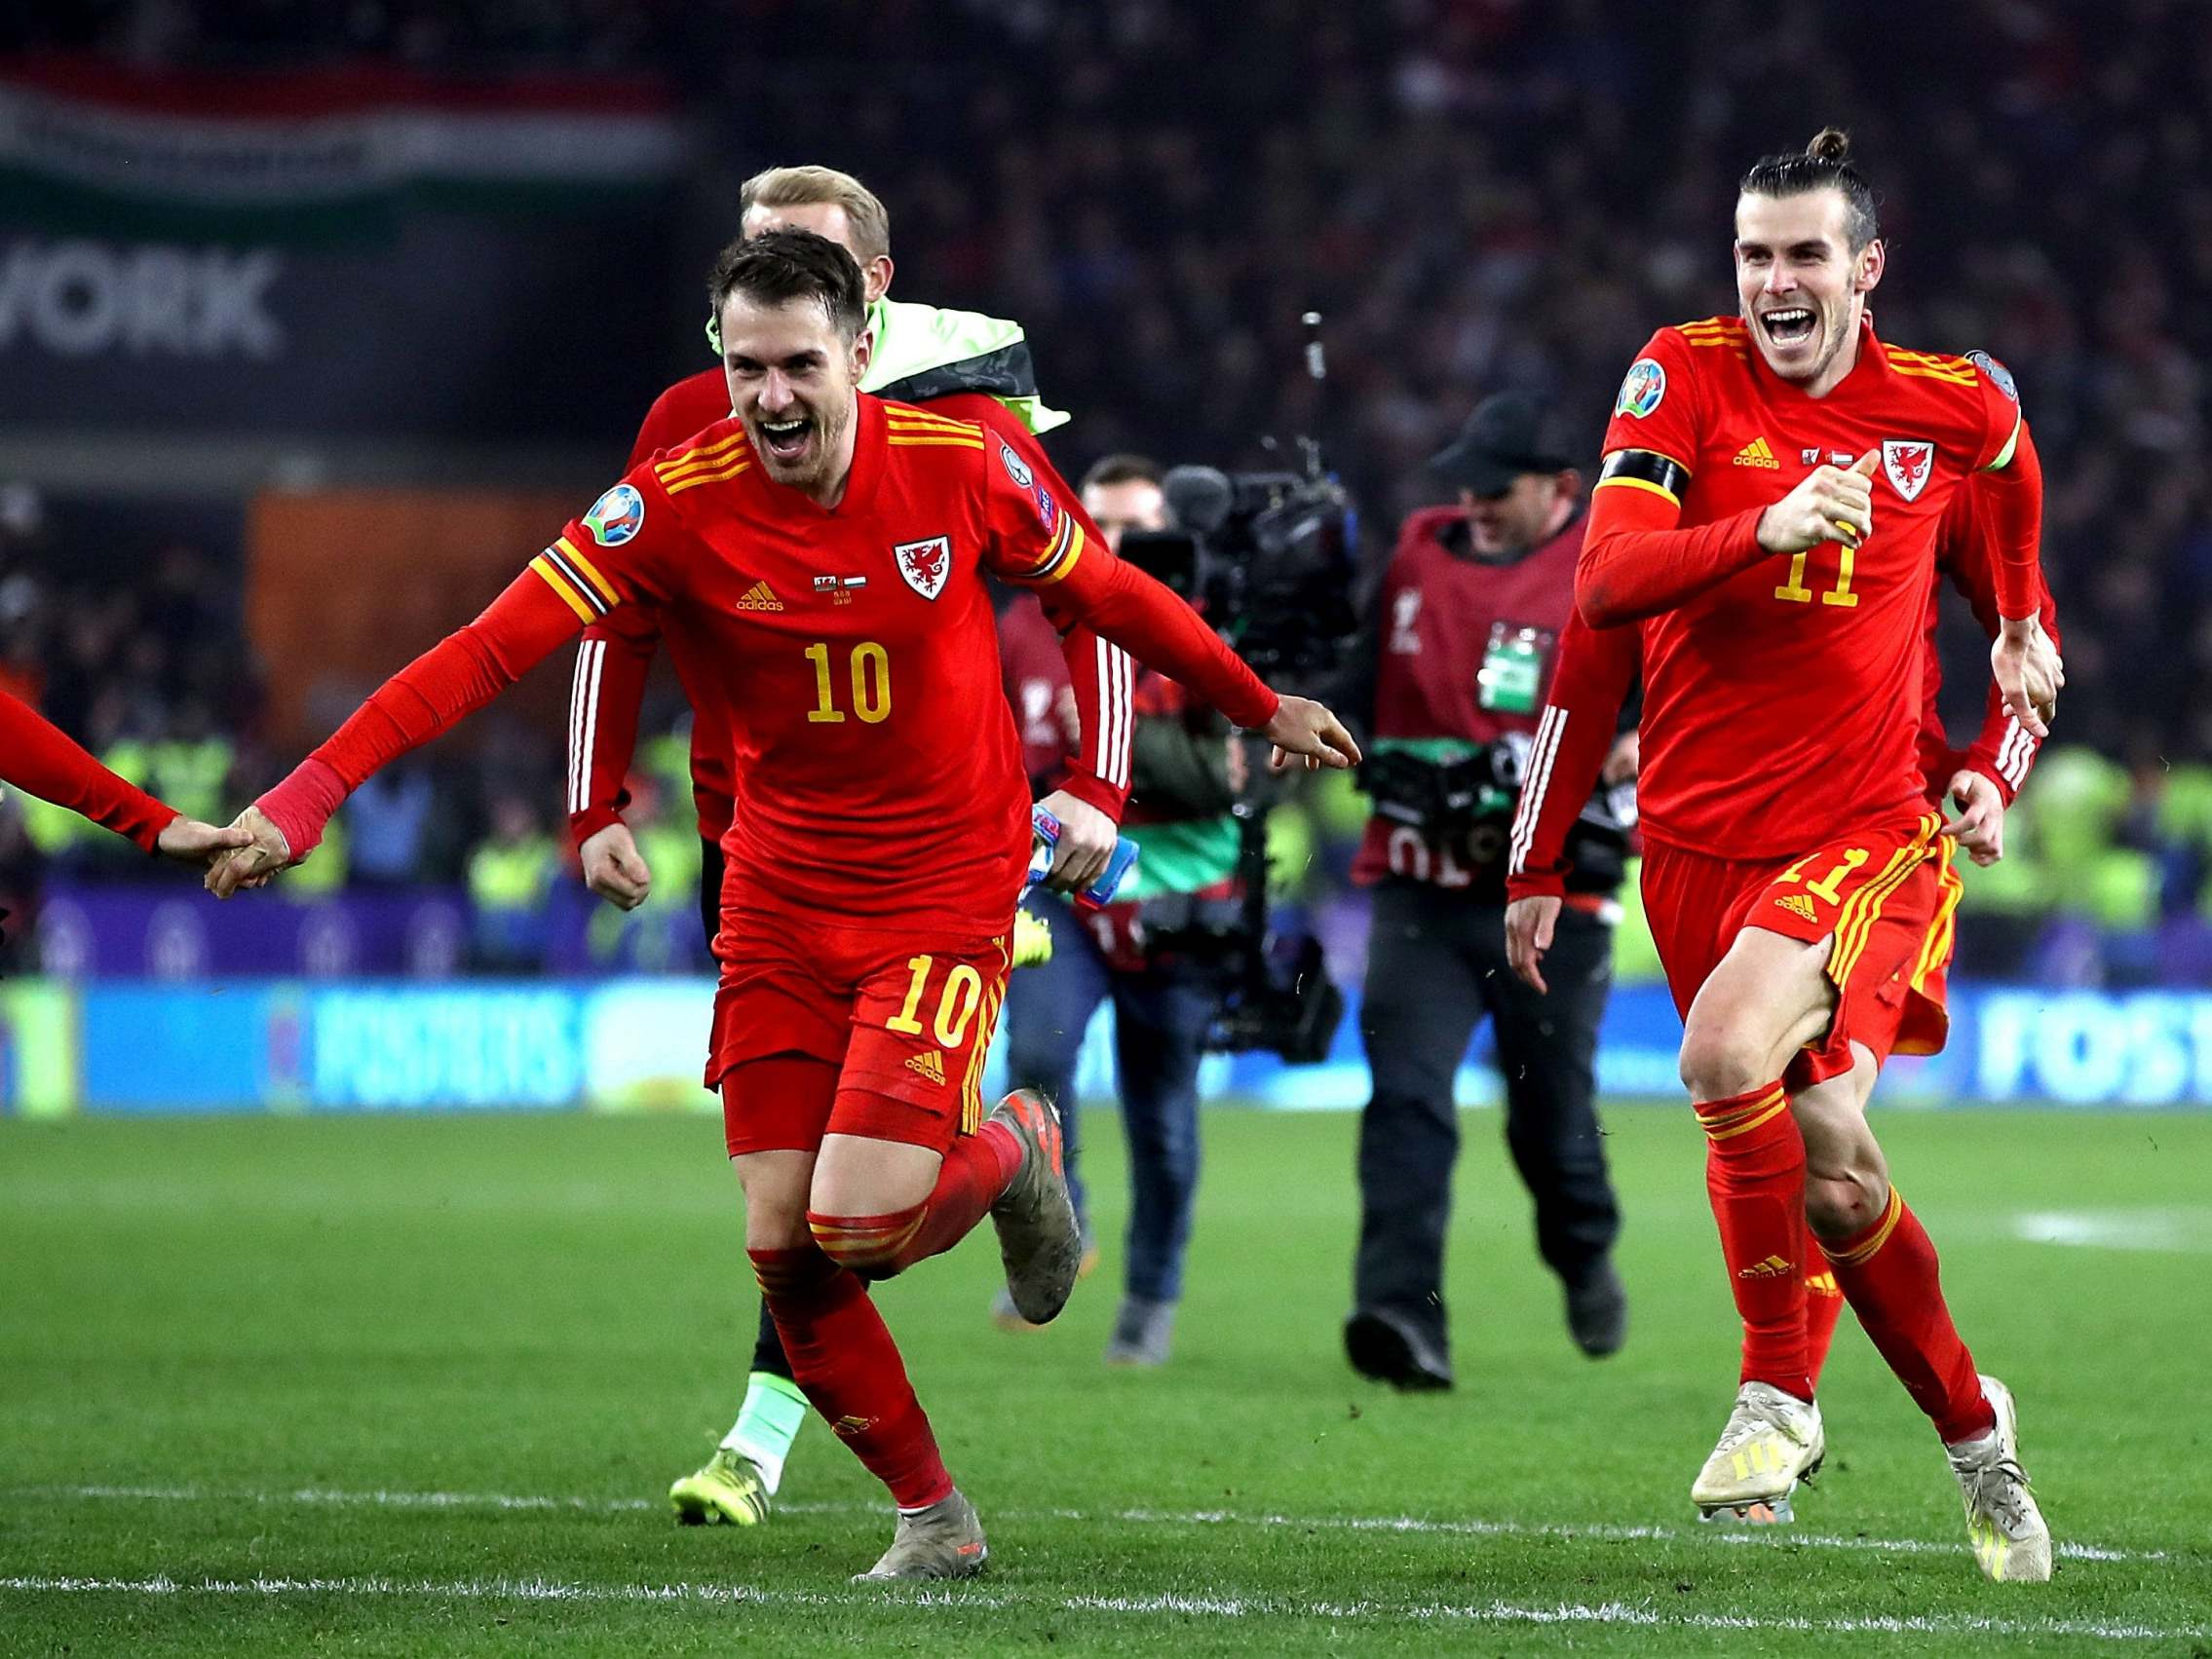 Wales vs Hungary result: Aaron Ramsey double secures Euro 2020 spot for Red Dragons